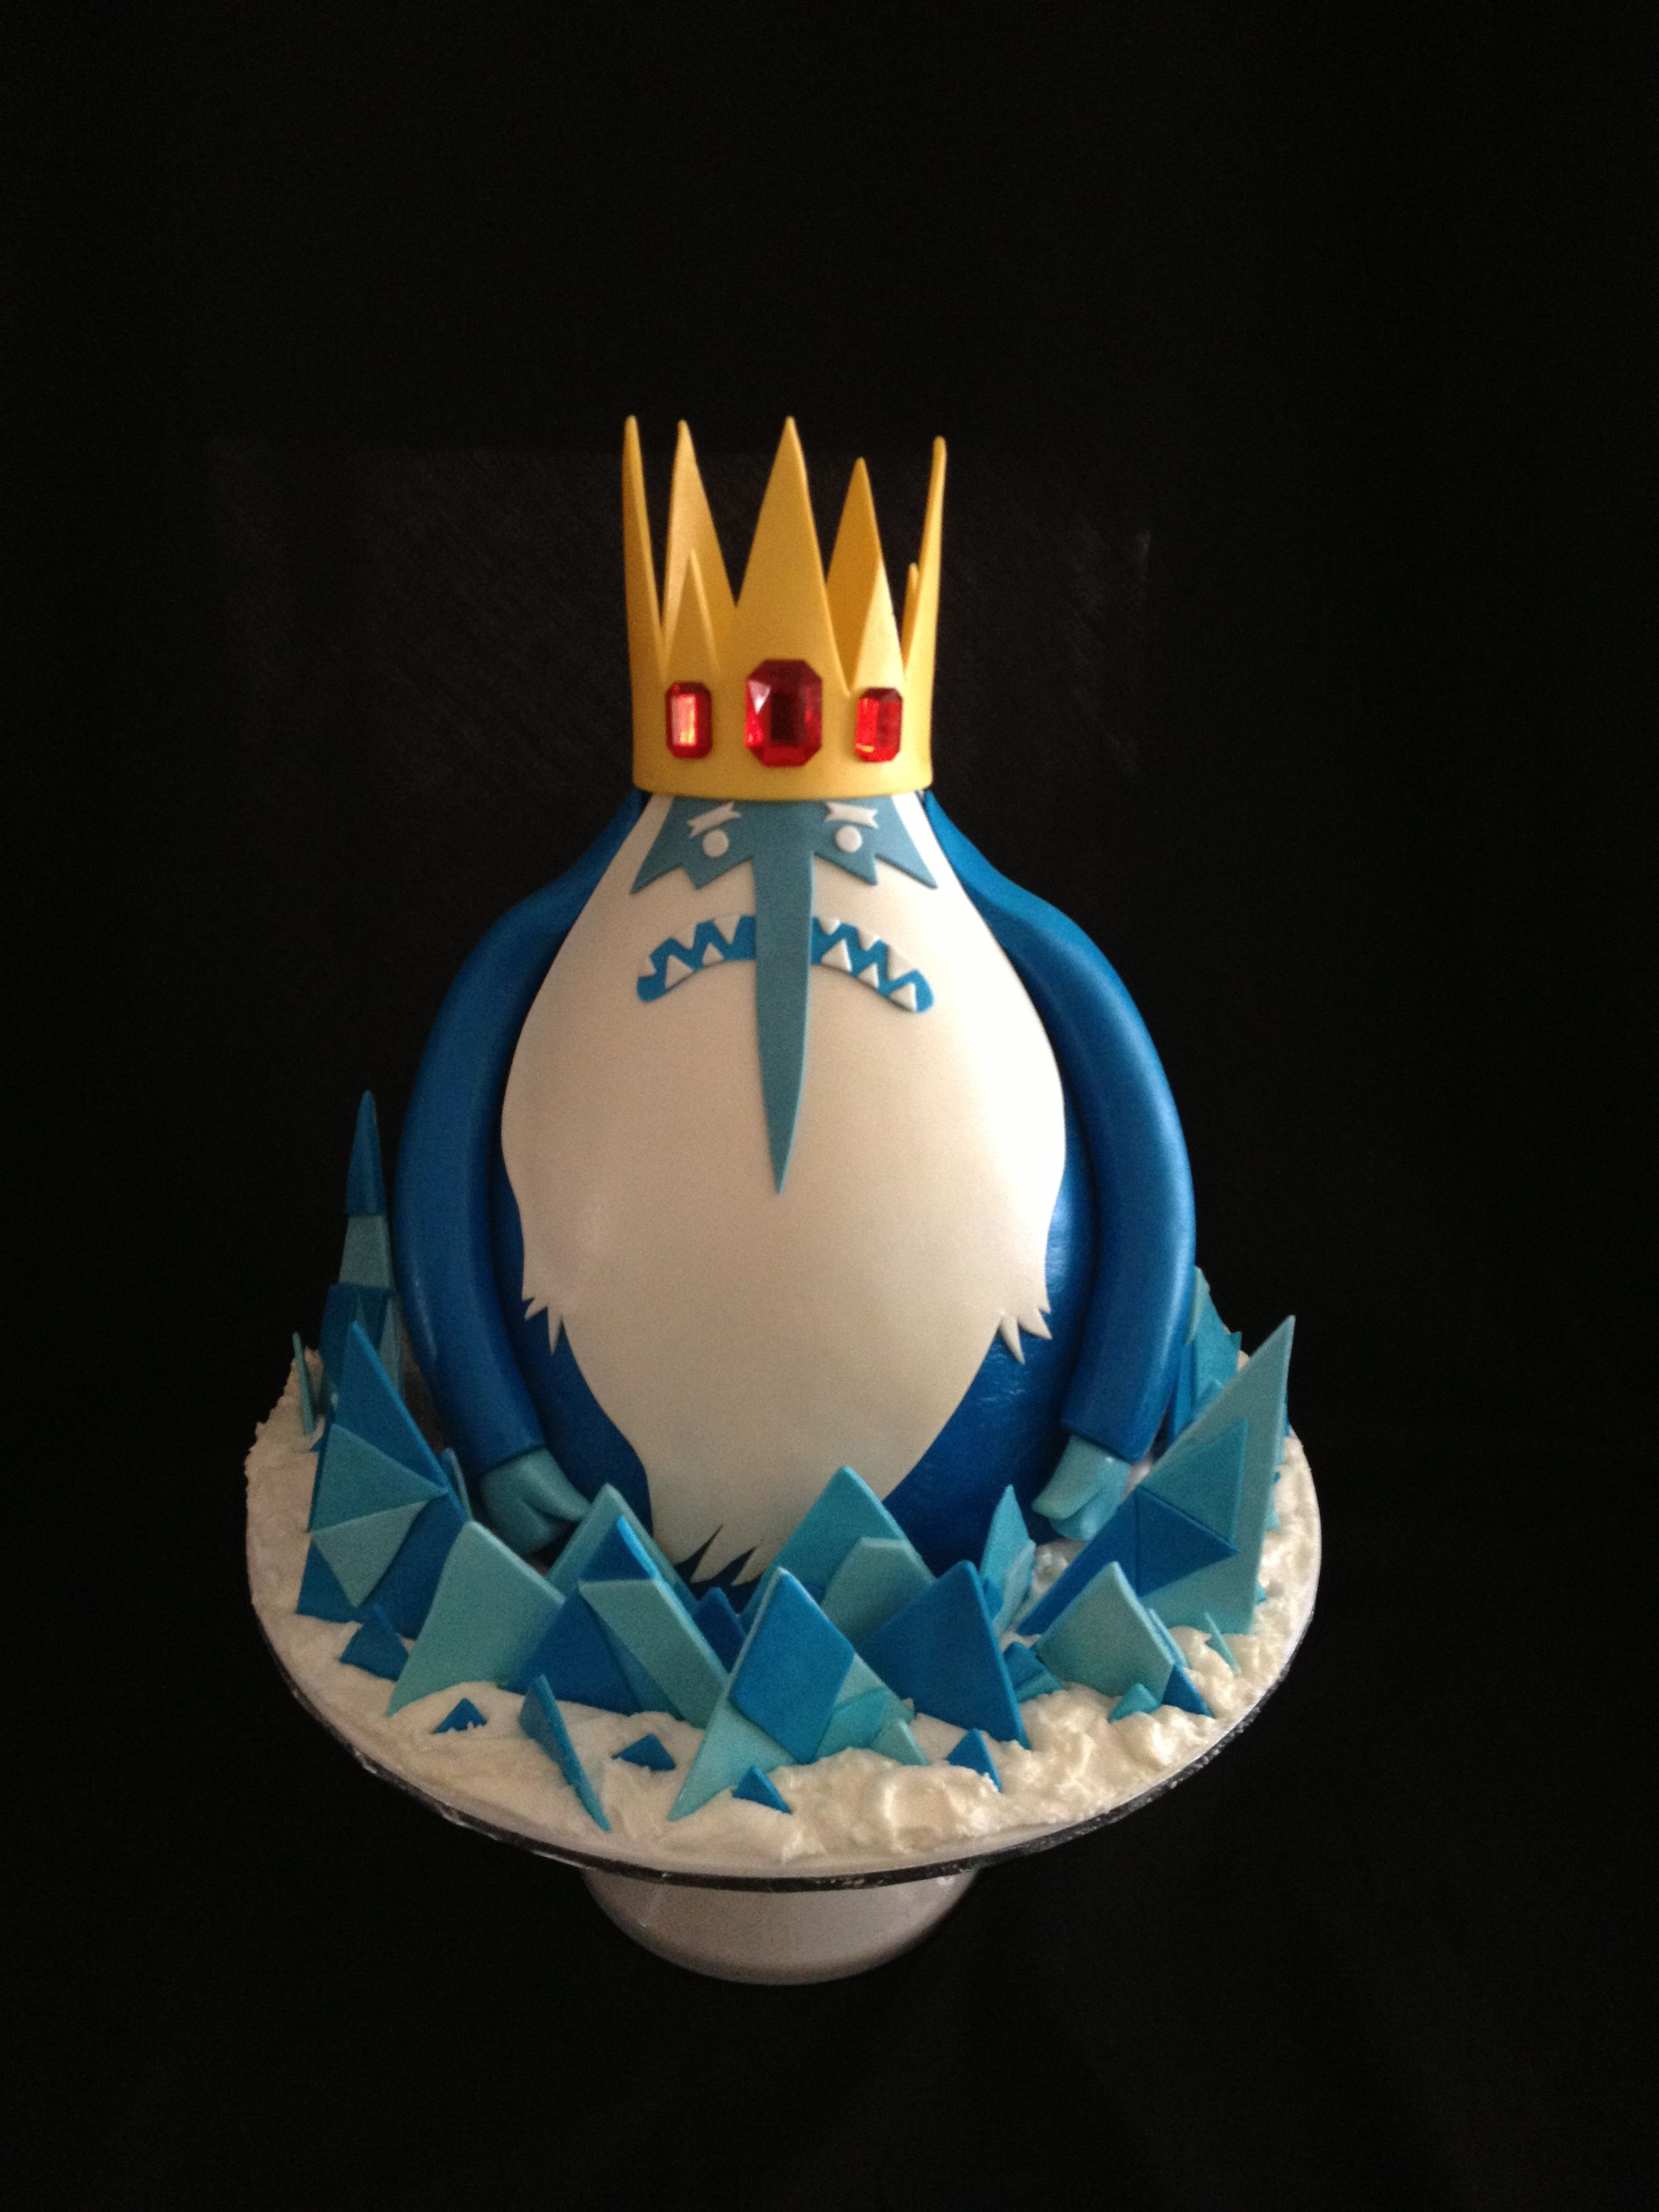 For my Sons 10th birthday The Ice King from the cartoon series